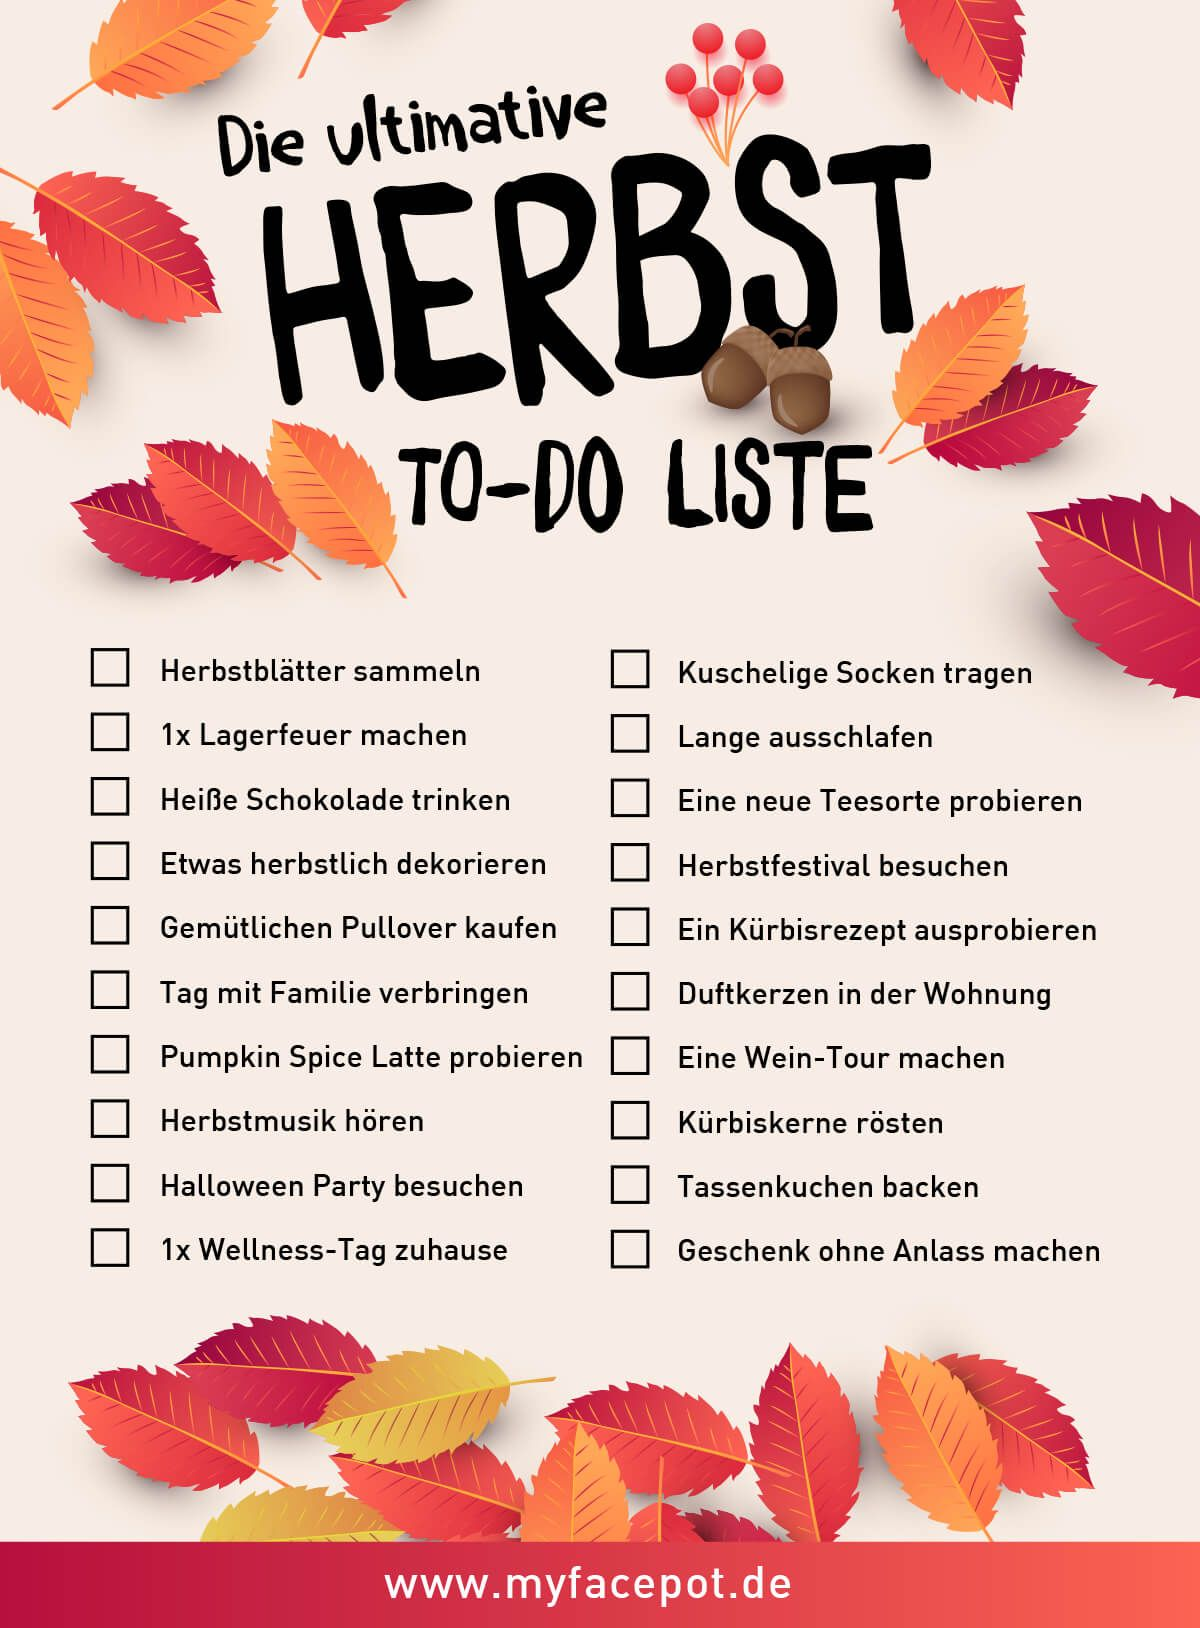 Die ultimative Herbst To-Do Liste